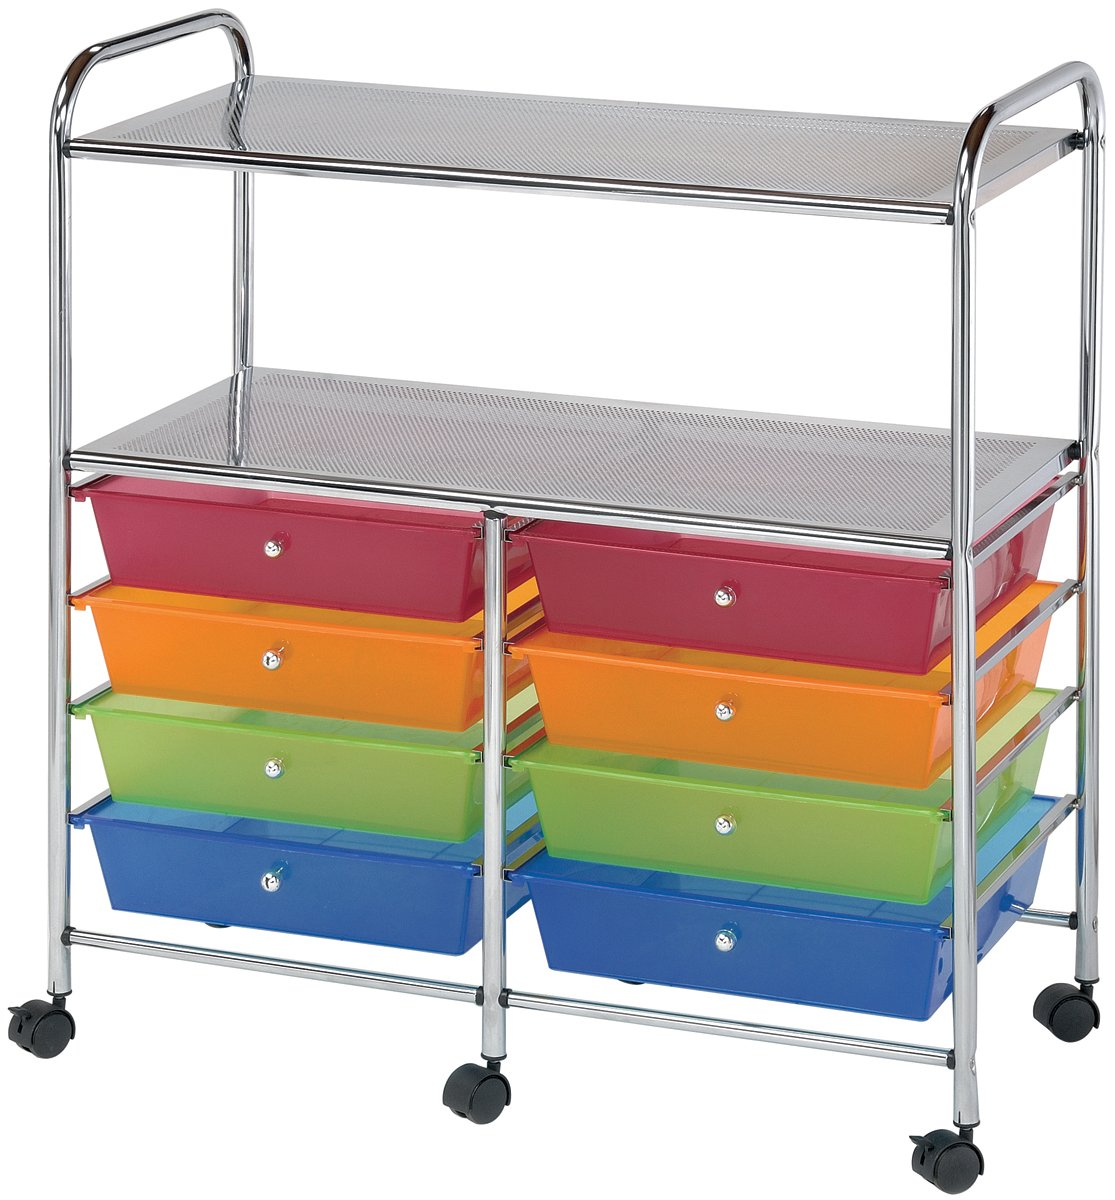 Merveilleux Amazon.com: Blue Hills Studio SC8MCDW 12 S Storage Cart 8 Drawer (Wide)  With 2 Shelf Multi Colored